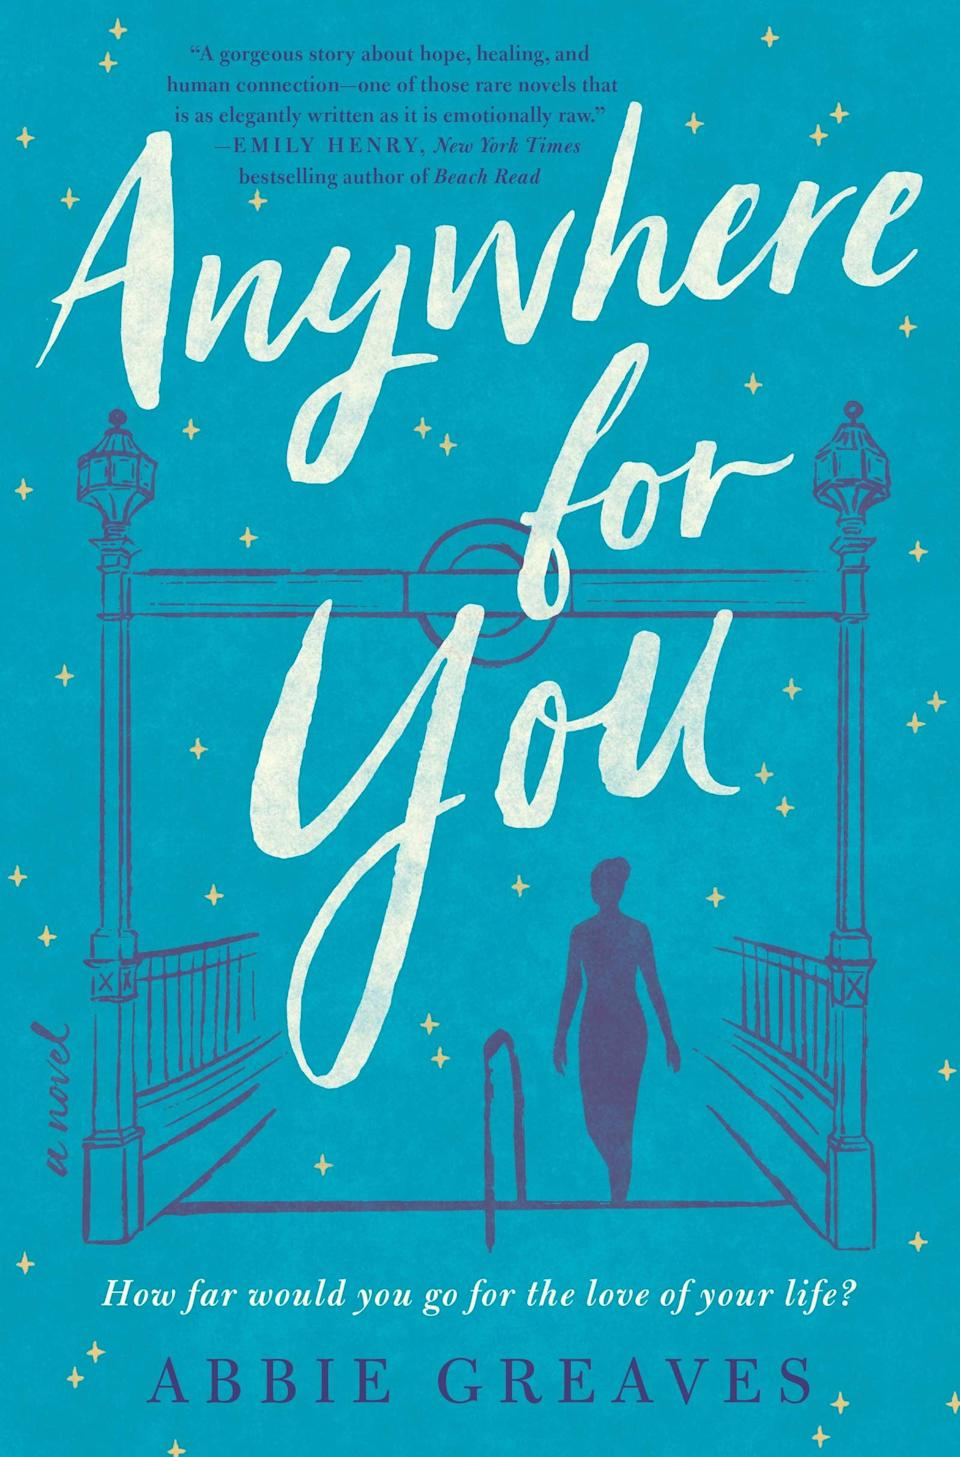 <p><span><strong>Anywhere for You</strong></span> by Abbie Greaves will break your heart and then put it back together again. For years, Mary O'Connor has visited Ealing Broadway station every day to hold a sign beseeching her lost love Jim to return home. One day, a reporter named Alice stops to ask Mary about Jim, and ends up embroiled in a love story full of mystery, heartbreak, and maybe, just maybe, a chance for happy ending. </p> <p><em>Out April 6</em></p>